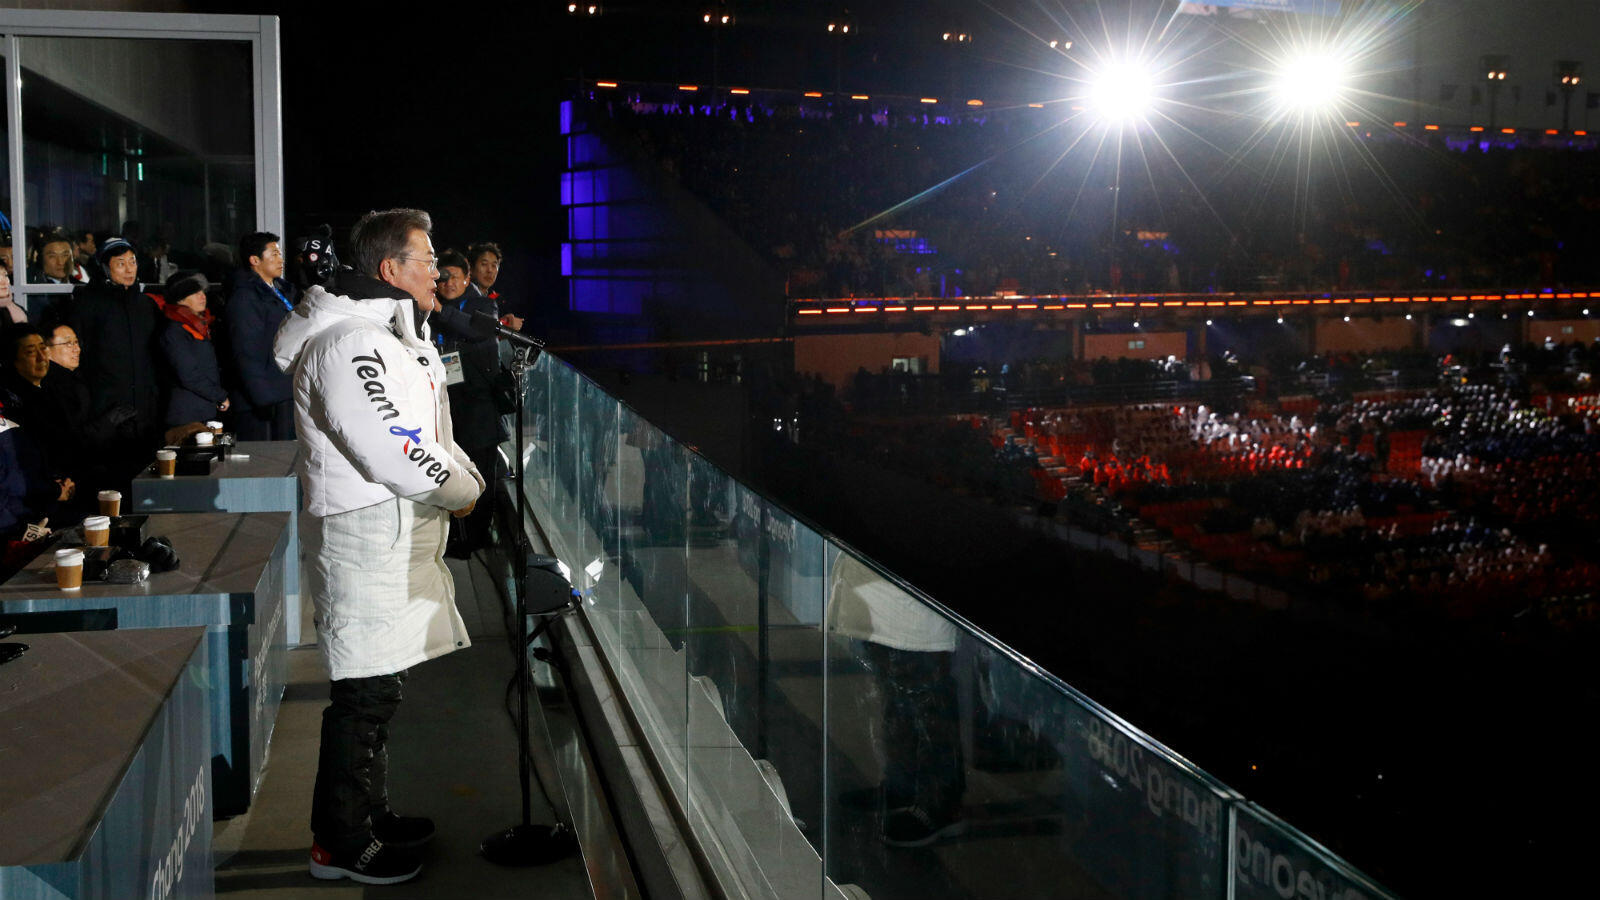 South Korean President Moon Jae-in presided over the official opening of the 23rd Olympic Winter Games in freezing winds.